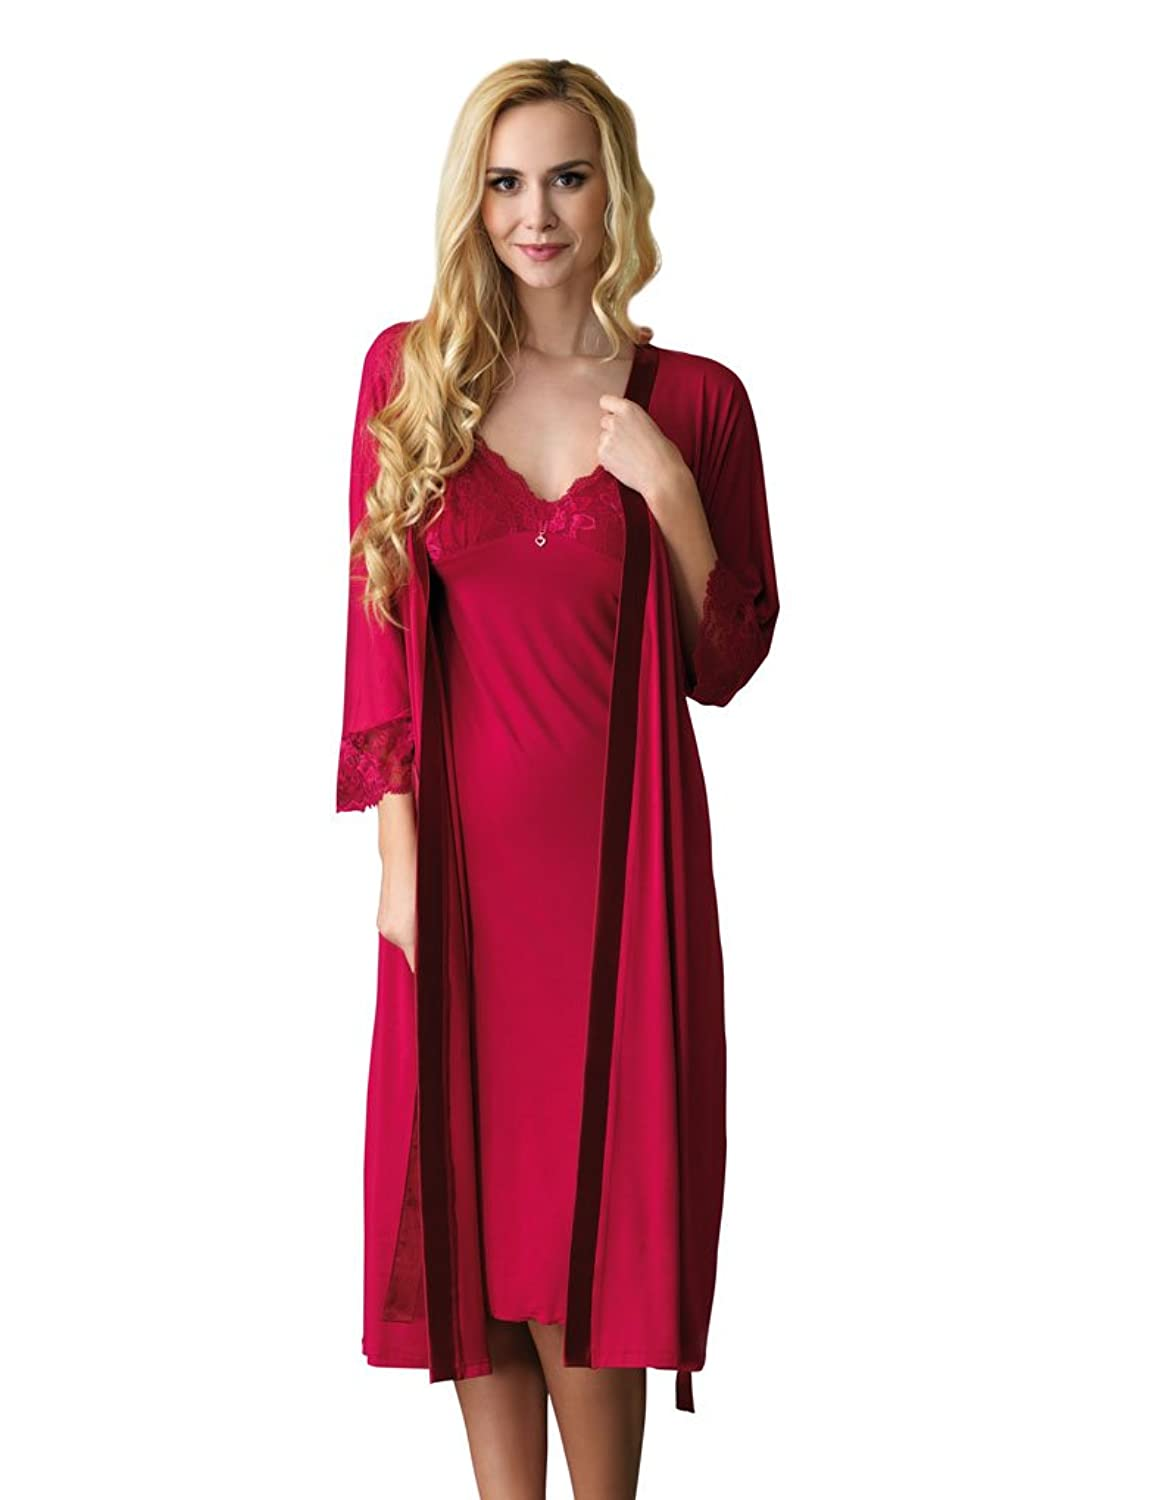 Vanilla 901R-07 Women's Classics Mia Ruby Red With Lace Dressing Gown Robe